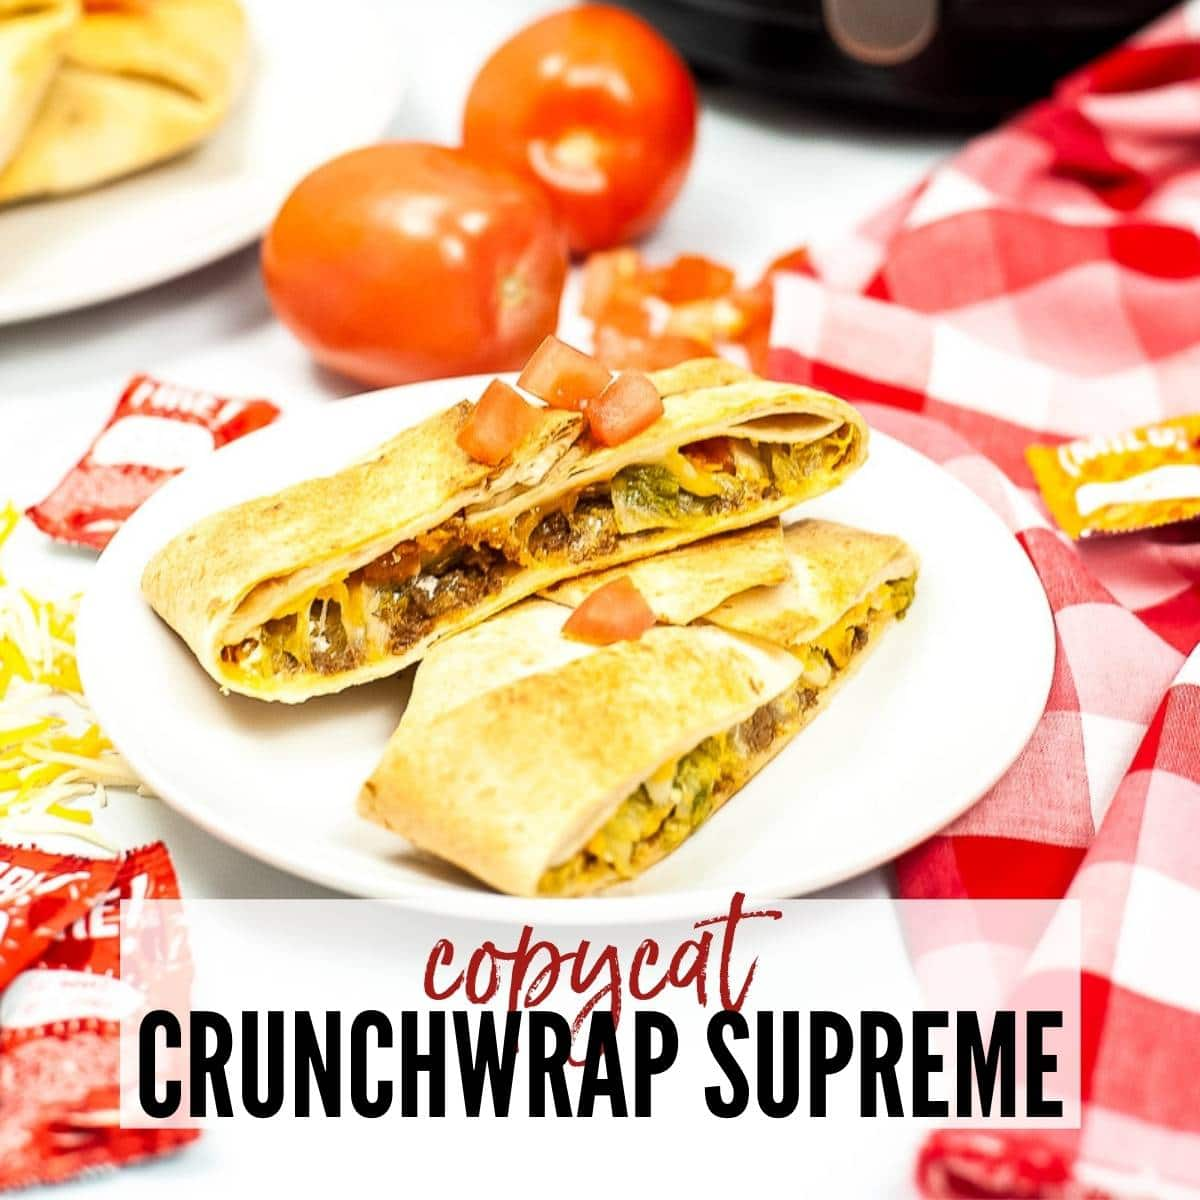 a Crunchwrap supreme cut in half on a white plate with graphic overlay